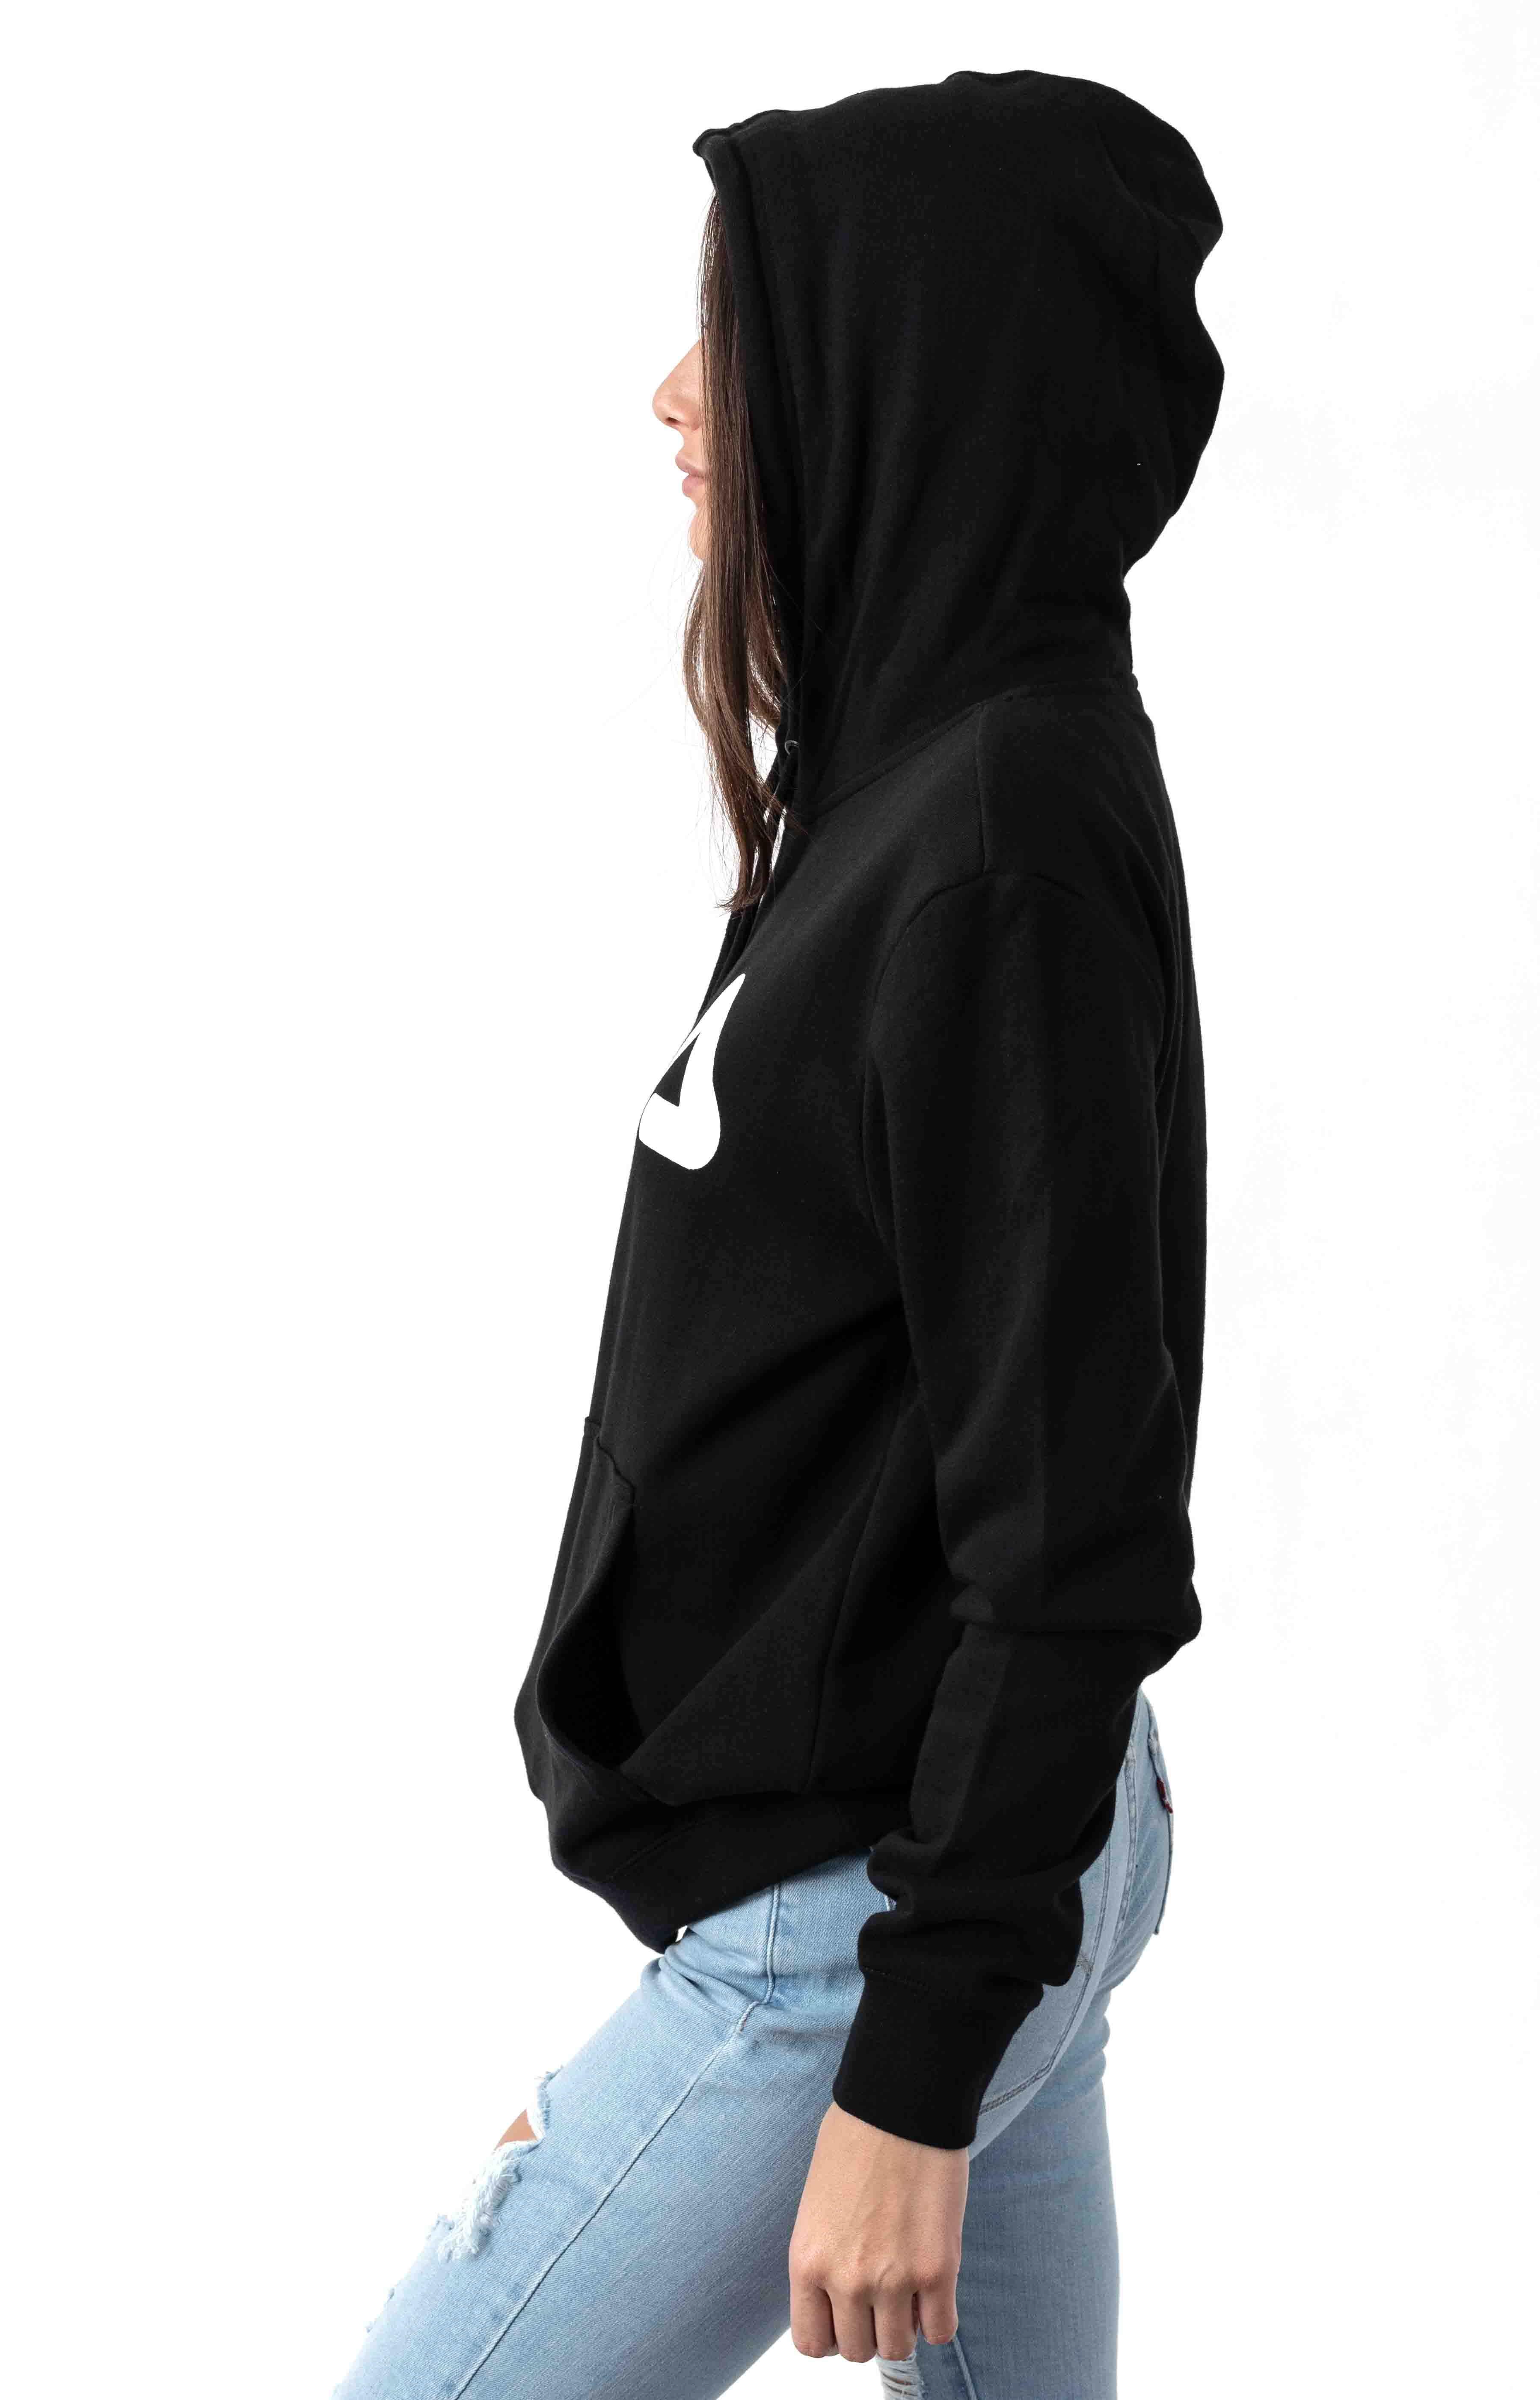 Lucy Pullover Hoodie - Black/White 2